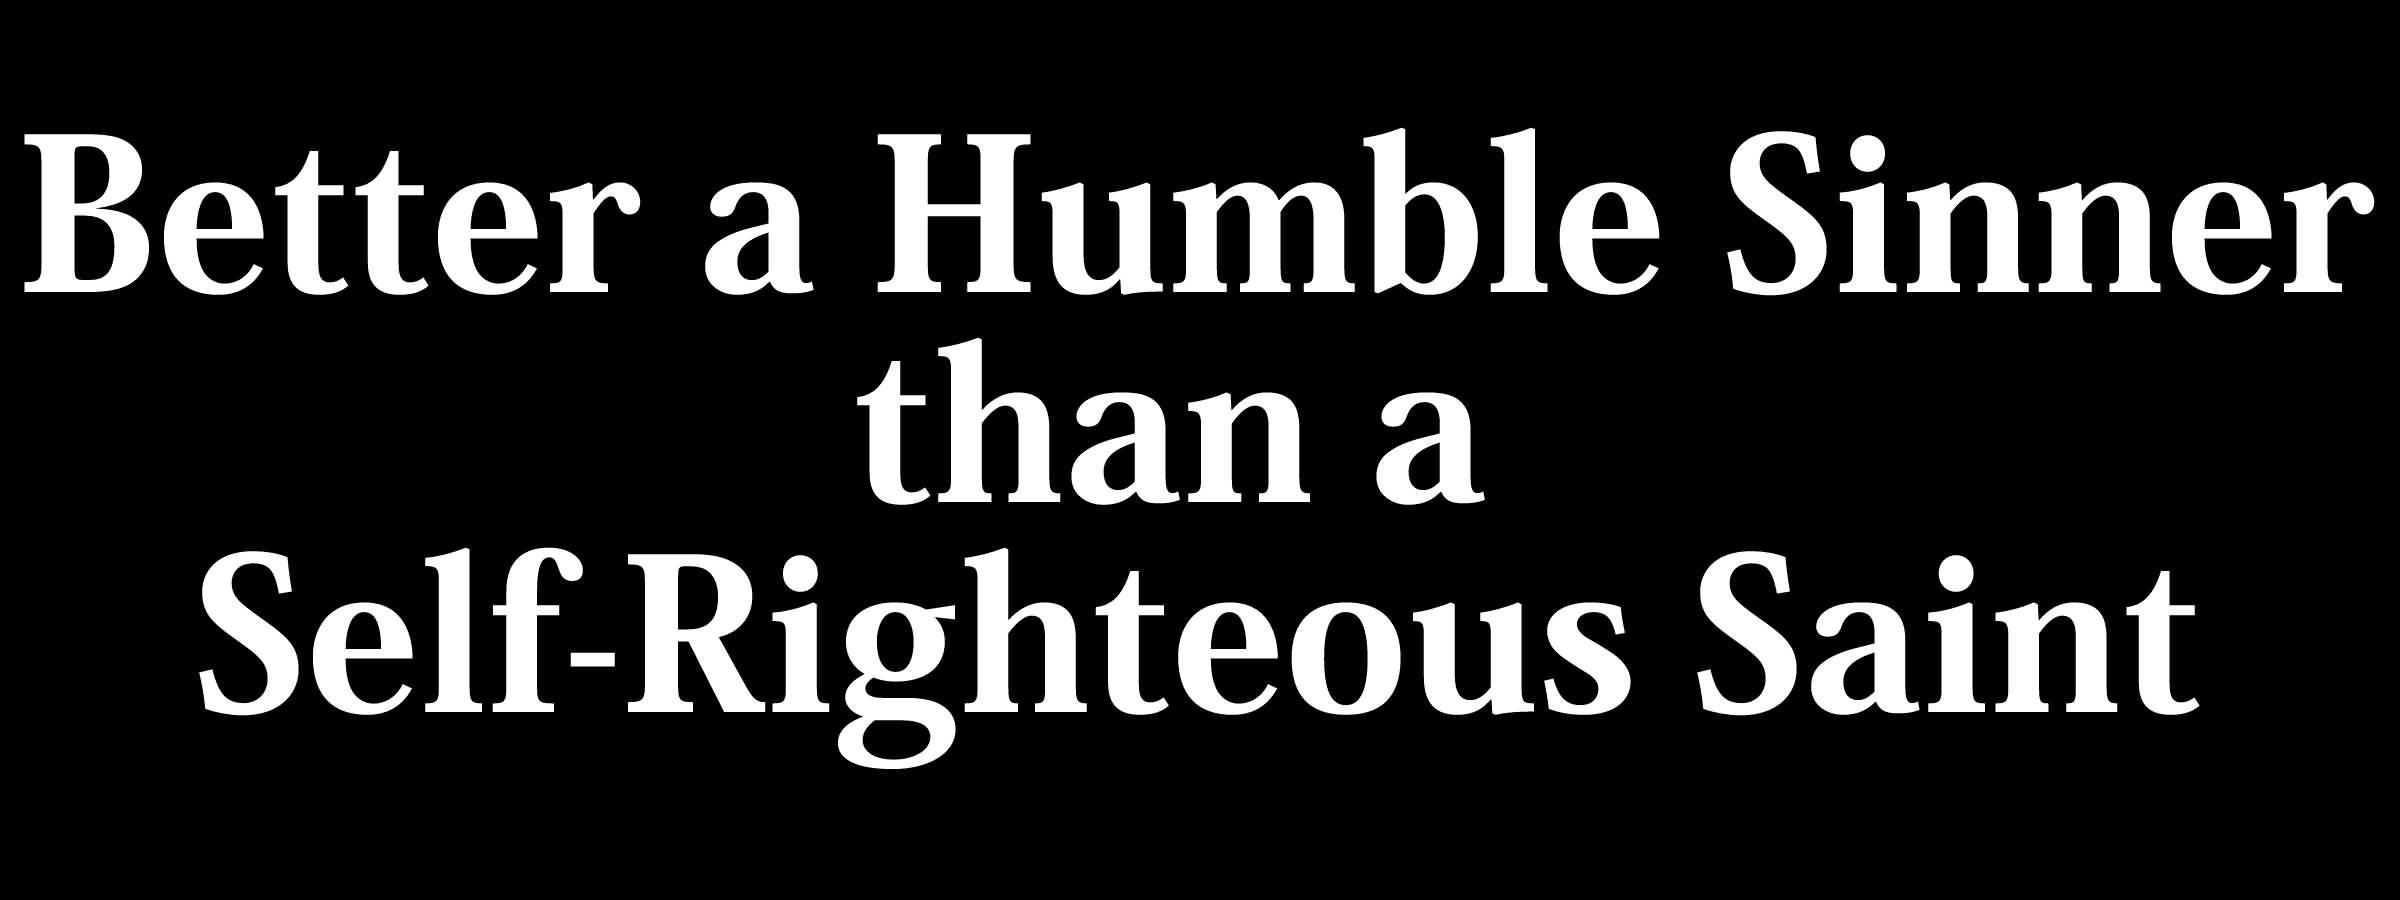 Quotes About Being Humble Be Humble Quotes Meme Image 19  Quotesbae